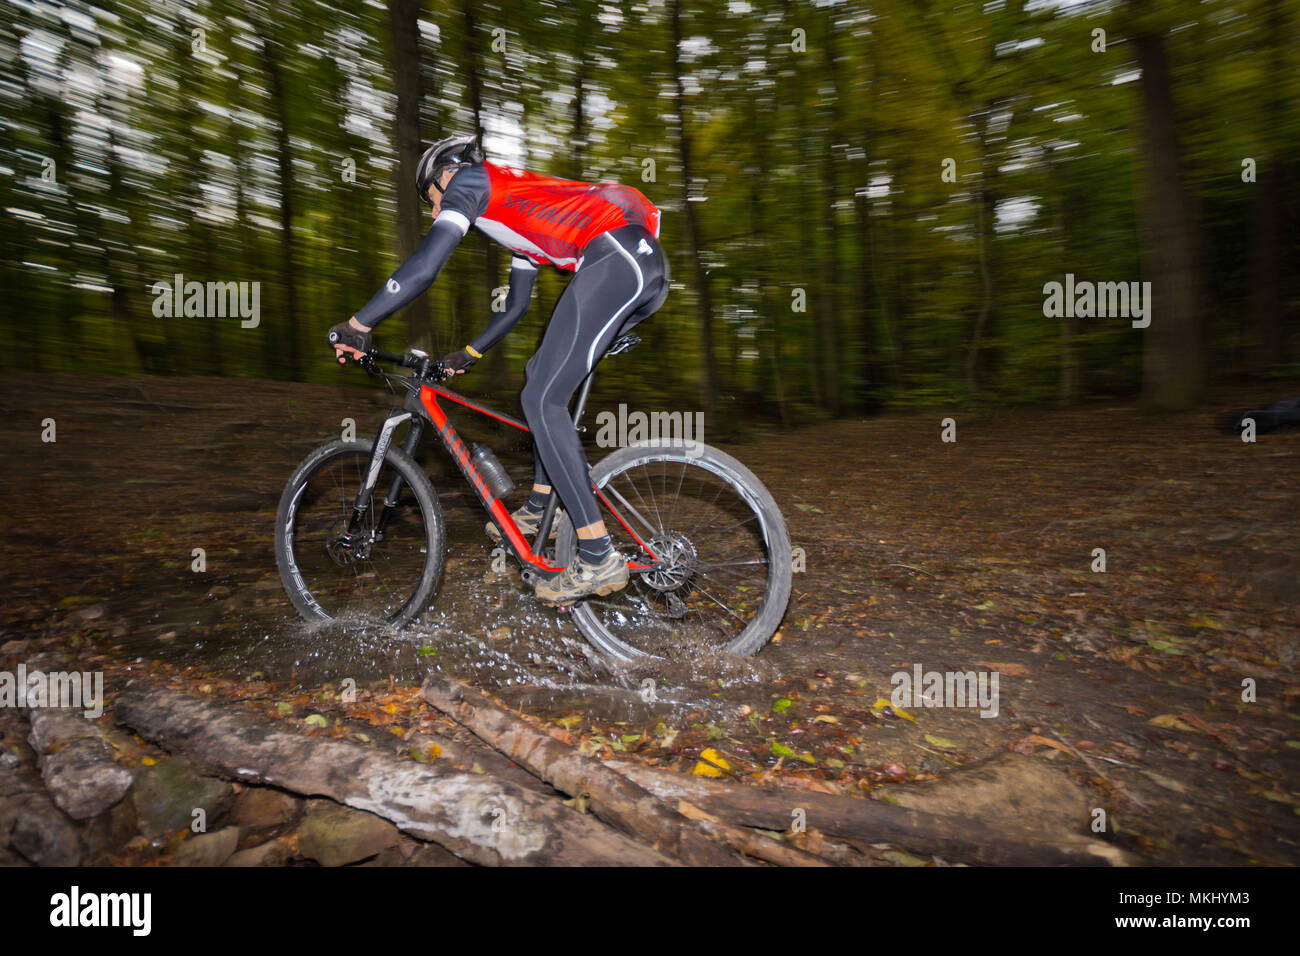 Mountainbiker in dark dusky Vienna Woods rides fast offroad on carbon hardtail along trail through forest stream with water splashes. - Stock Image